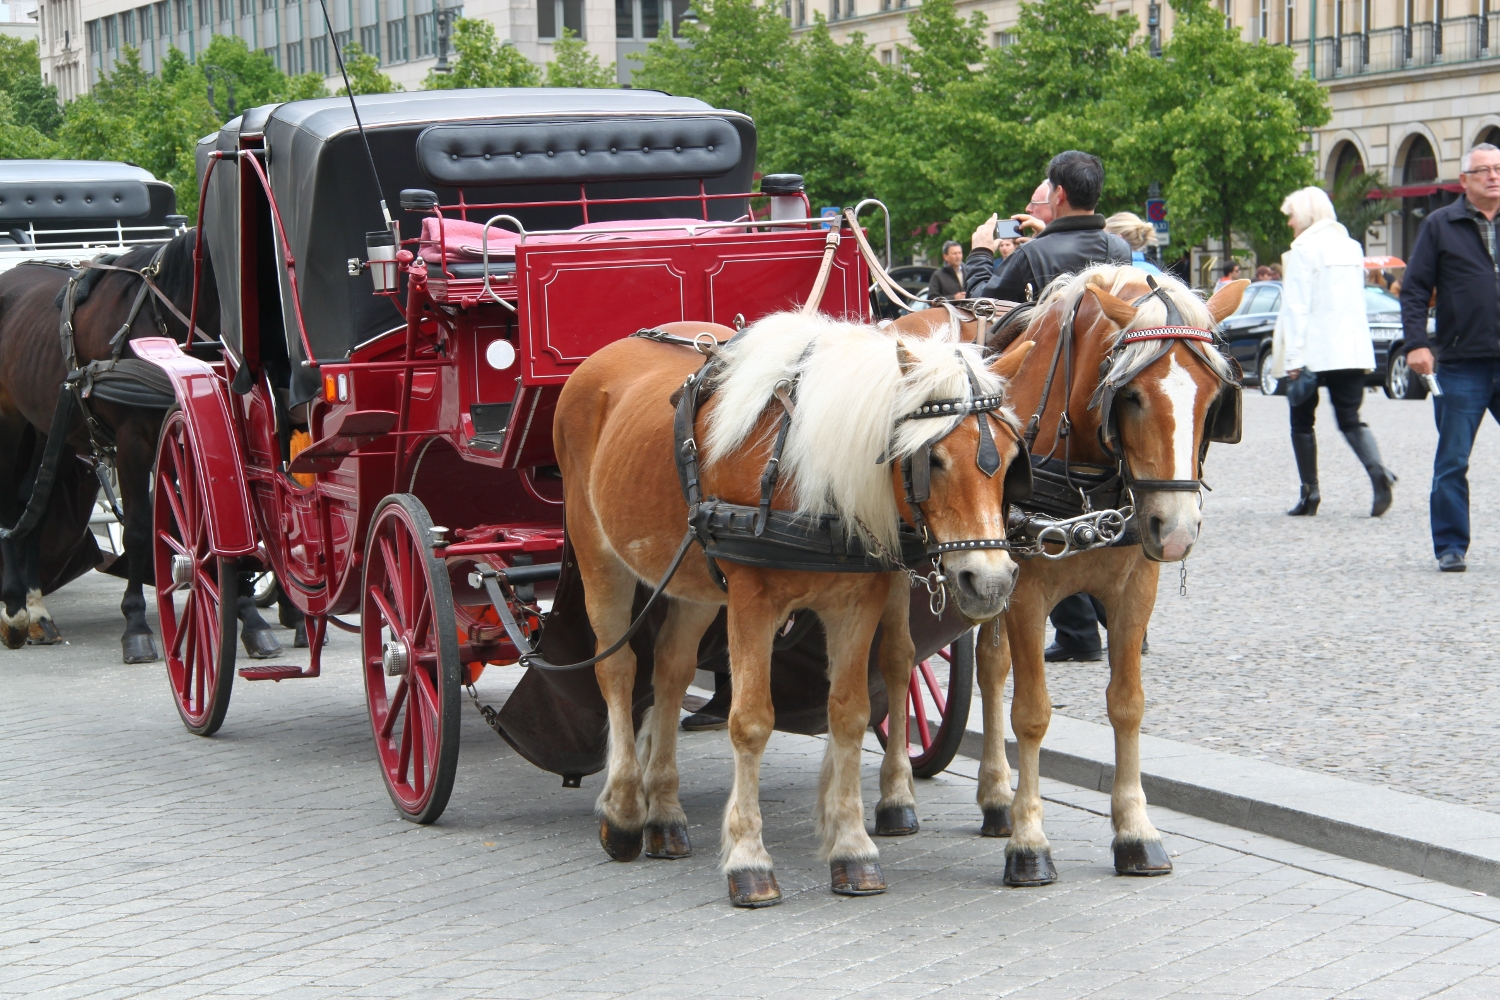 Horse carriage in Berlin